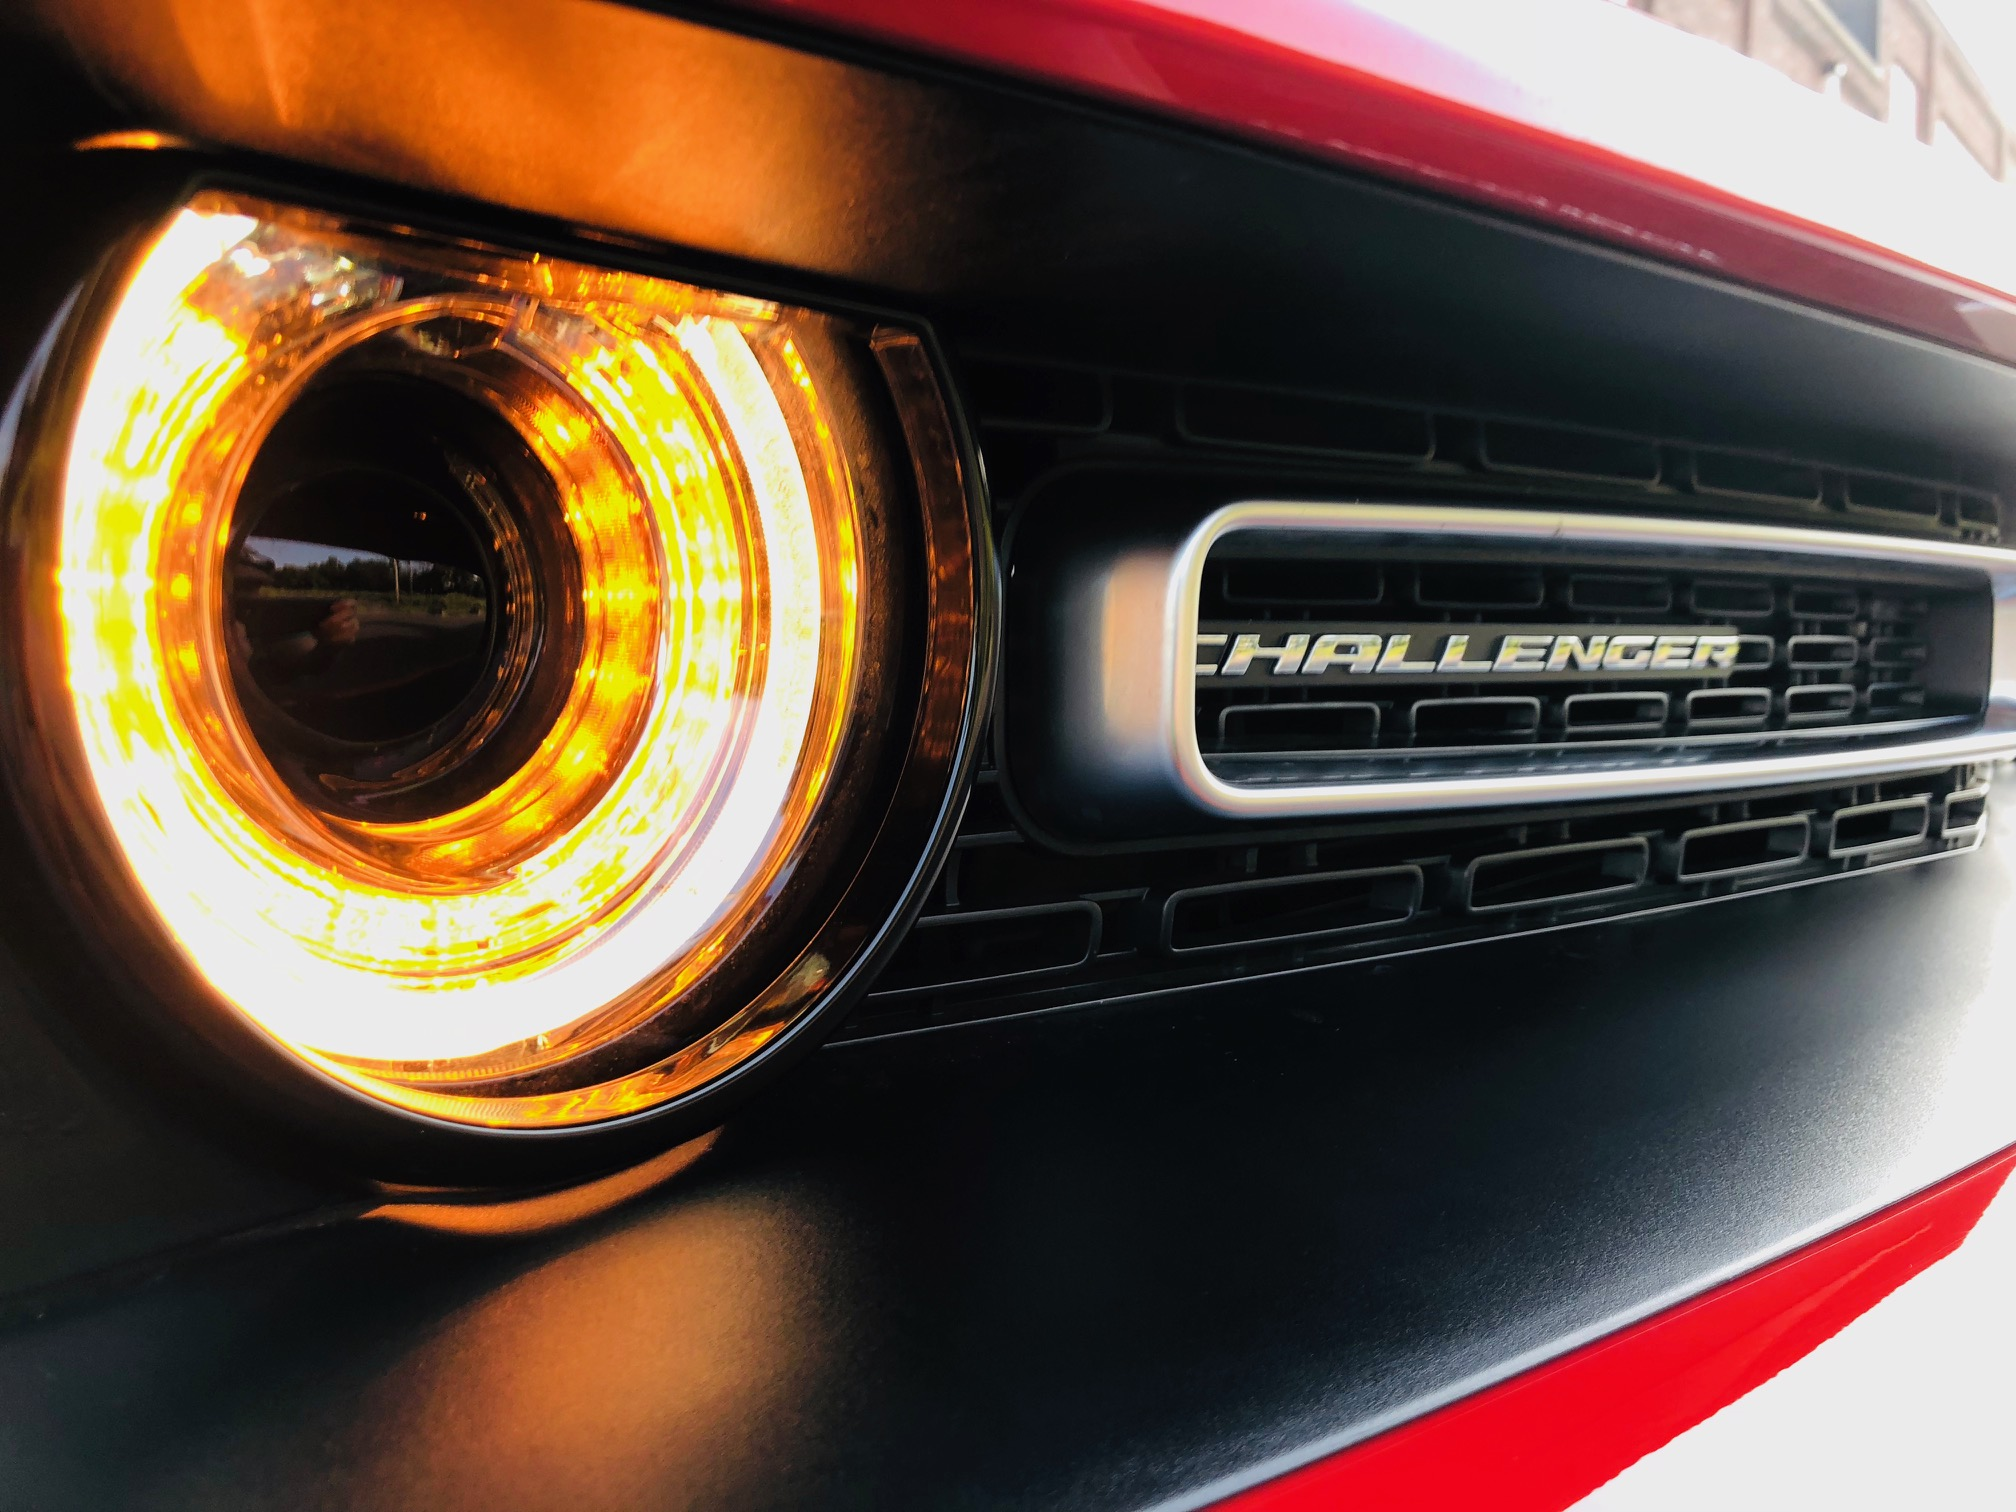 a closeup of the glowing headlight of a cherry red 2018 dodge challenger